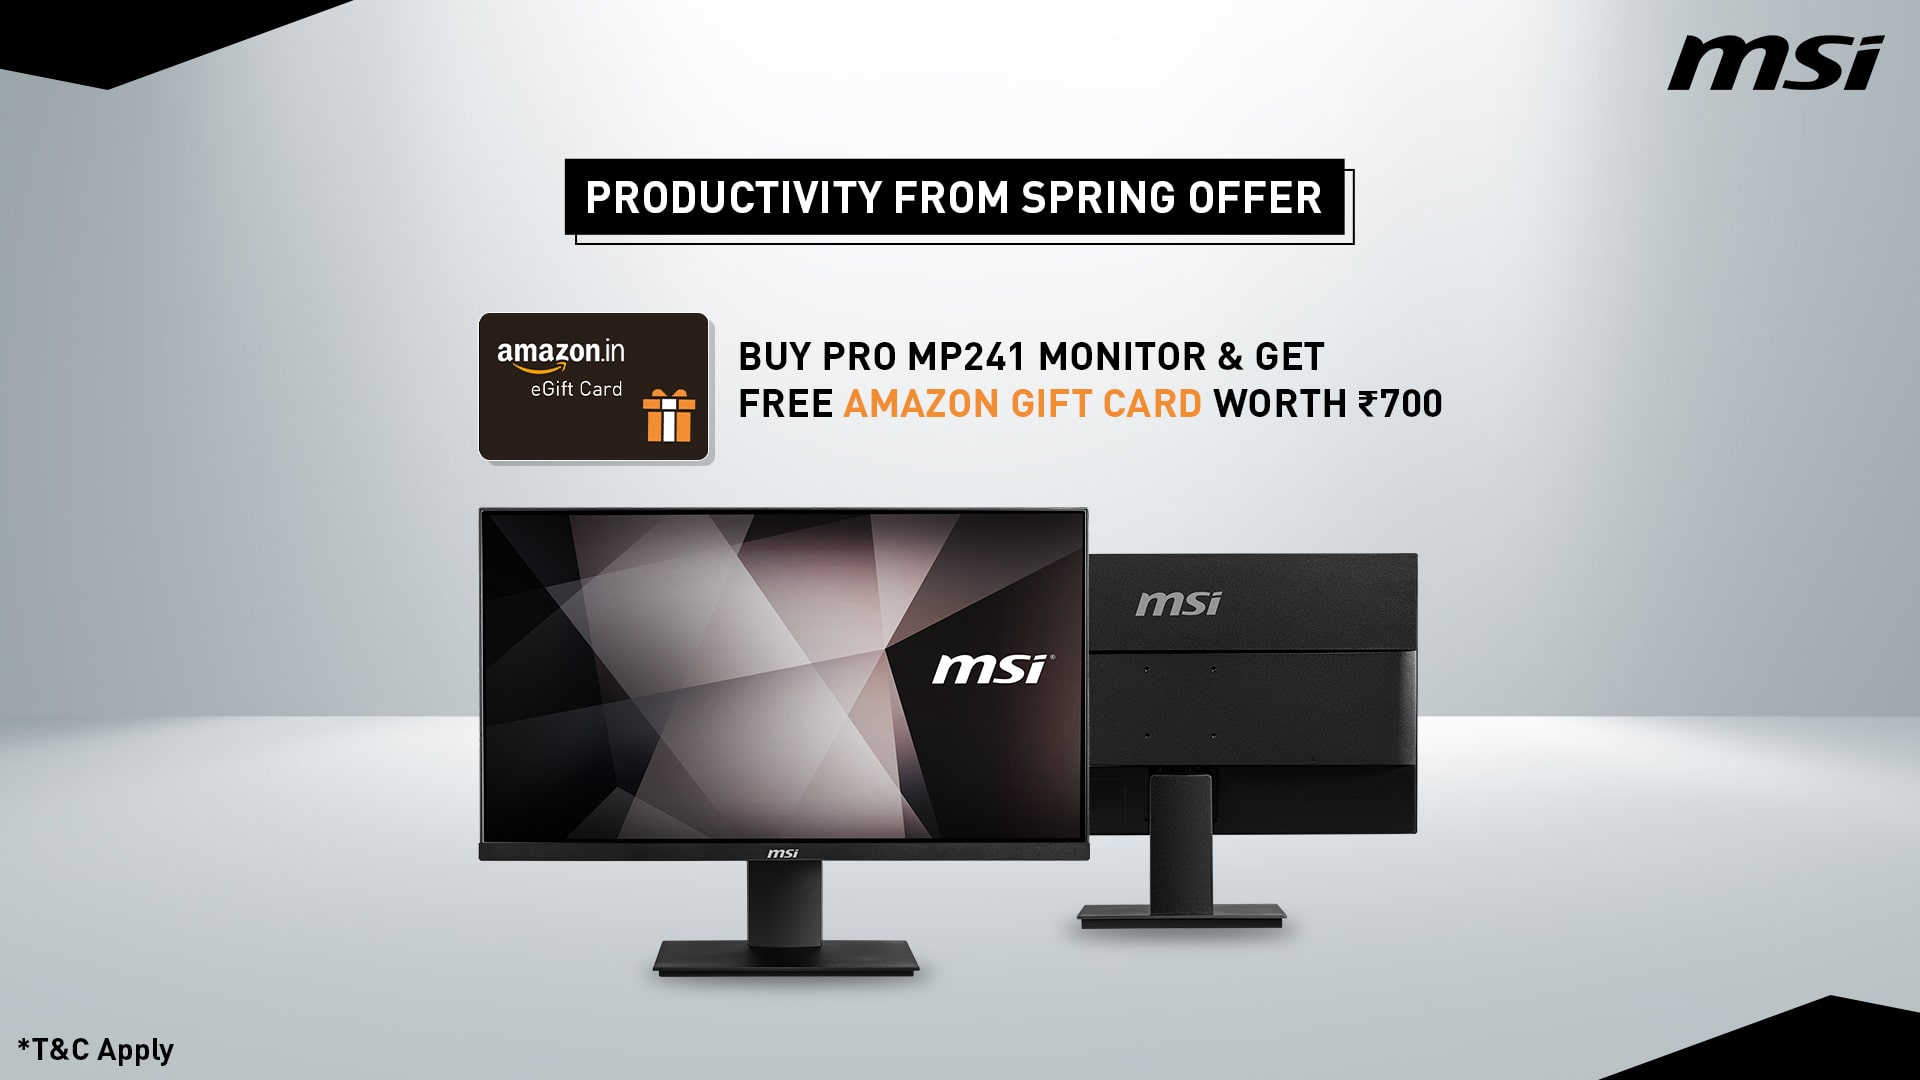 msi new moni promo main